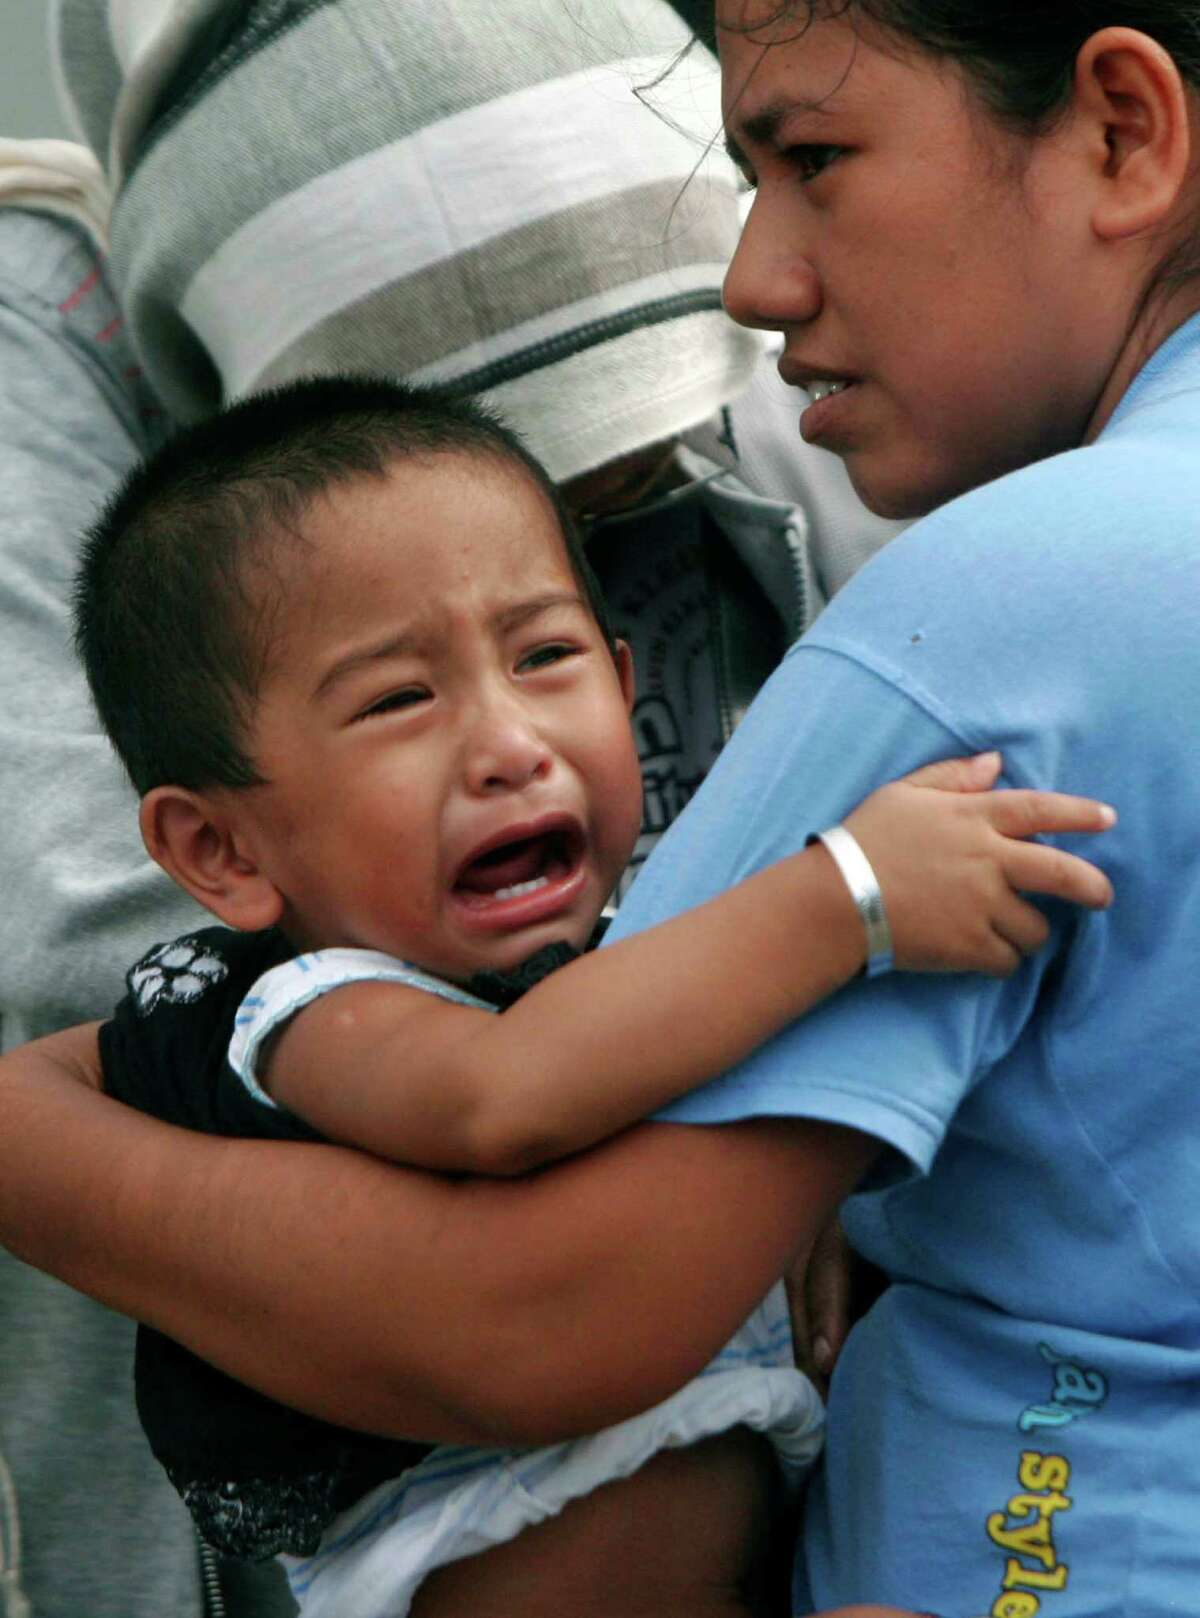 A boy cries as he is carried by his mother as they evacuate to higher ground after a strong earthquake was felt in Banda Aceh, Aceh province, Sumatra island, Indonesia, Wednesday, April 11, 2012. Two massive earthquakes triggered back-to-back tsunami warnings for Indonesia on Wednesday, sending panicked residents fleeing to high ground in cars and on the backs of motorcycles. There were no signs of deadly waves, however, or serious damage, and a watch for much of the Indian Ocean was lifted after a few hours.